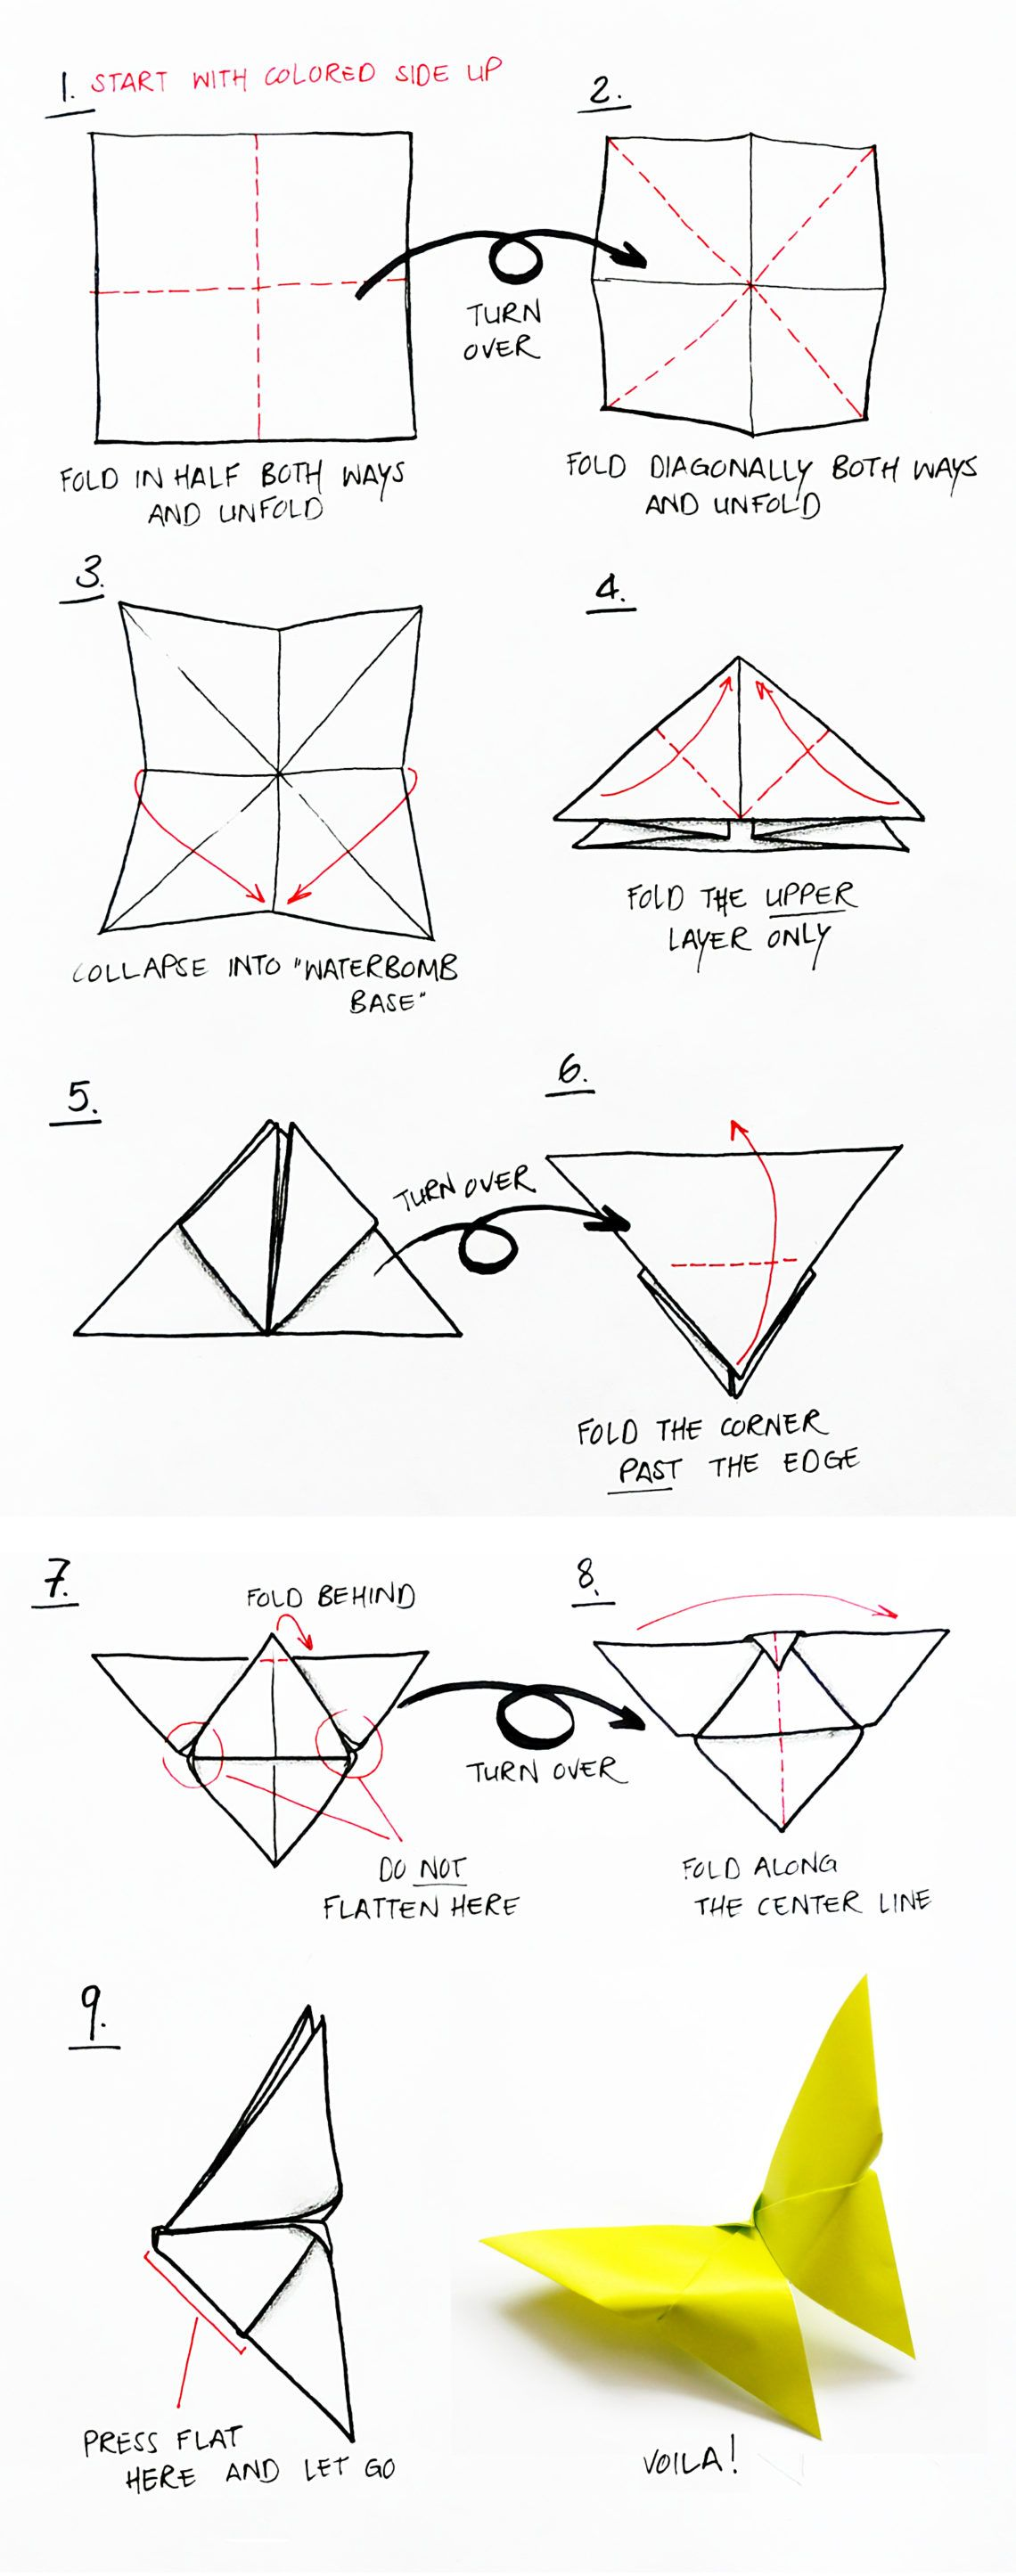 Origami Remarkable Butterfly Instructions Difficult Diagrams Diy Peppermintblog Peppermint Step By Easy